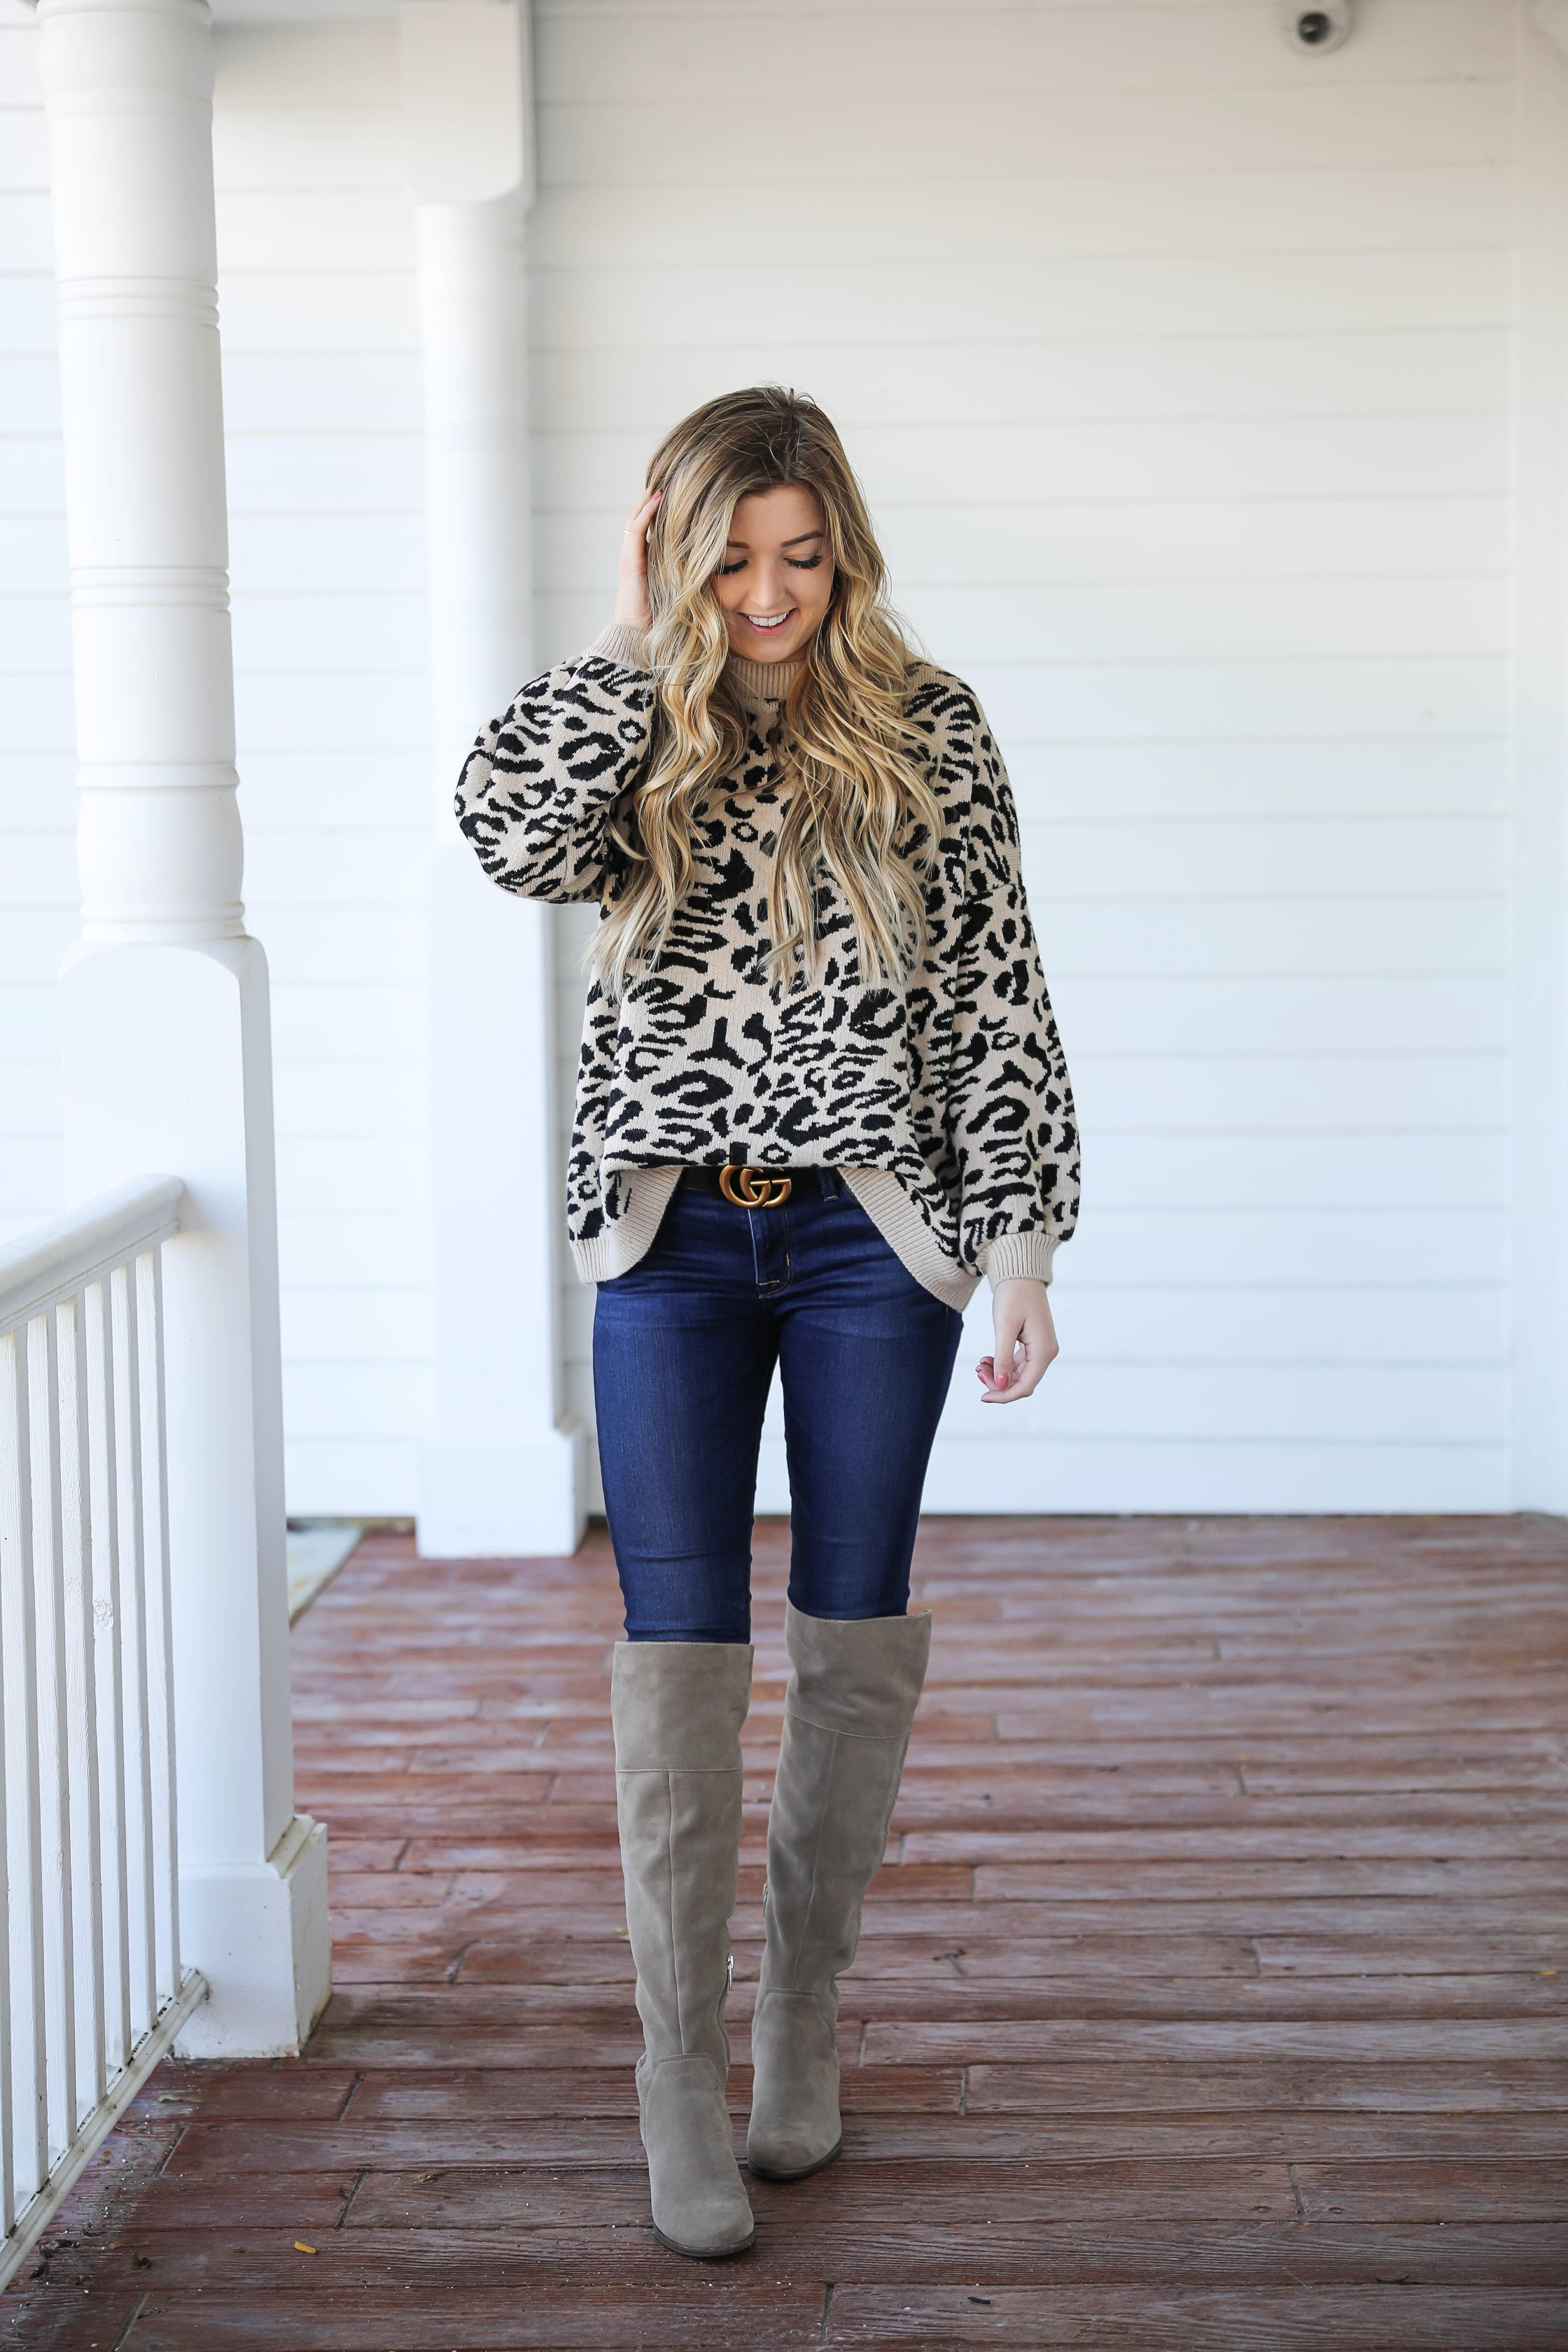 Leopard sweater for fall! Paired with my favorite $30 Gucci belt and Vince Camuto over the knee boots! Such a cute fall outfit idea! Details on fashion blog daily dose of charm by Lauren Lindmark